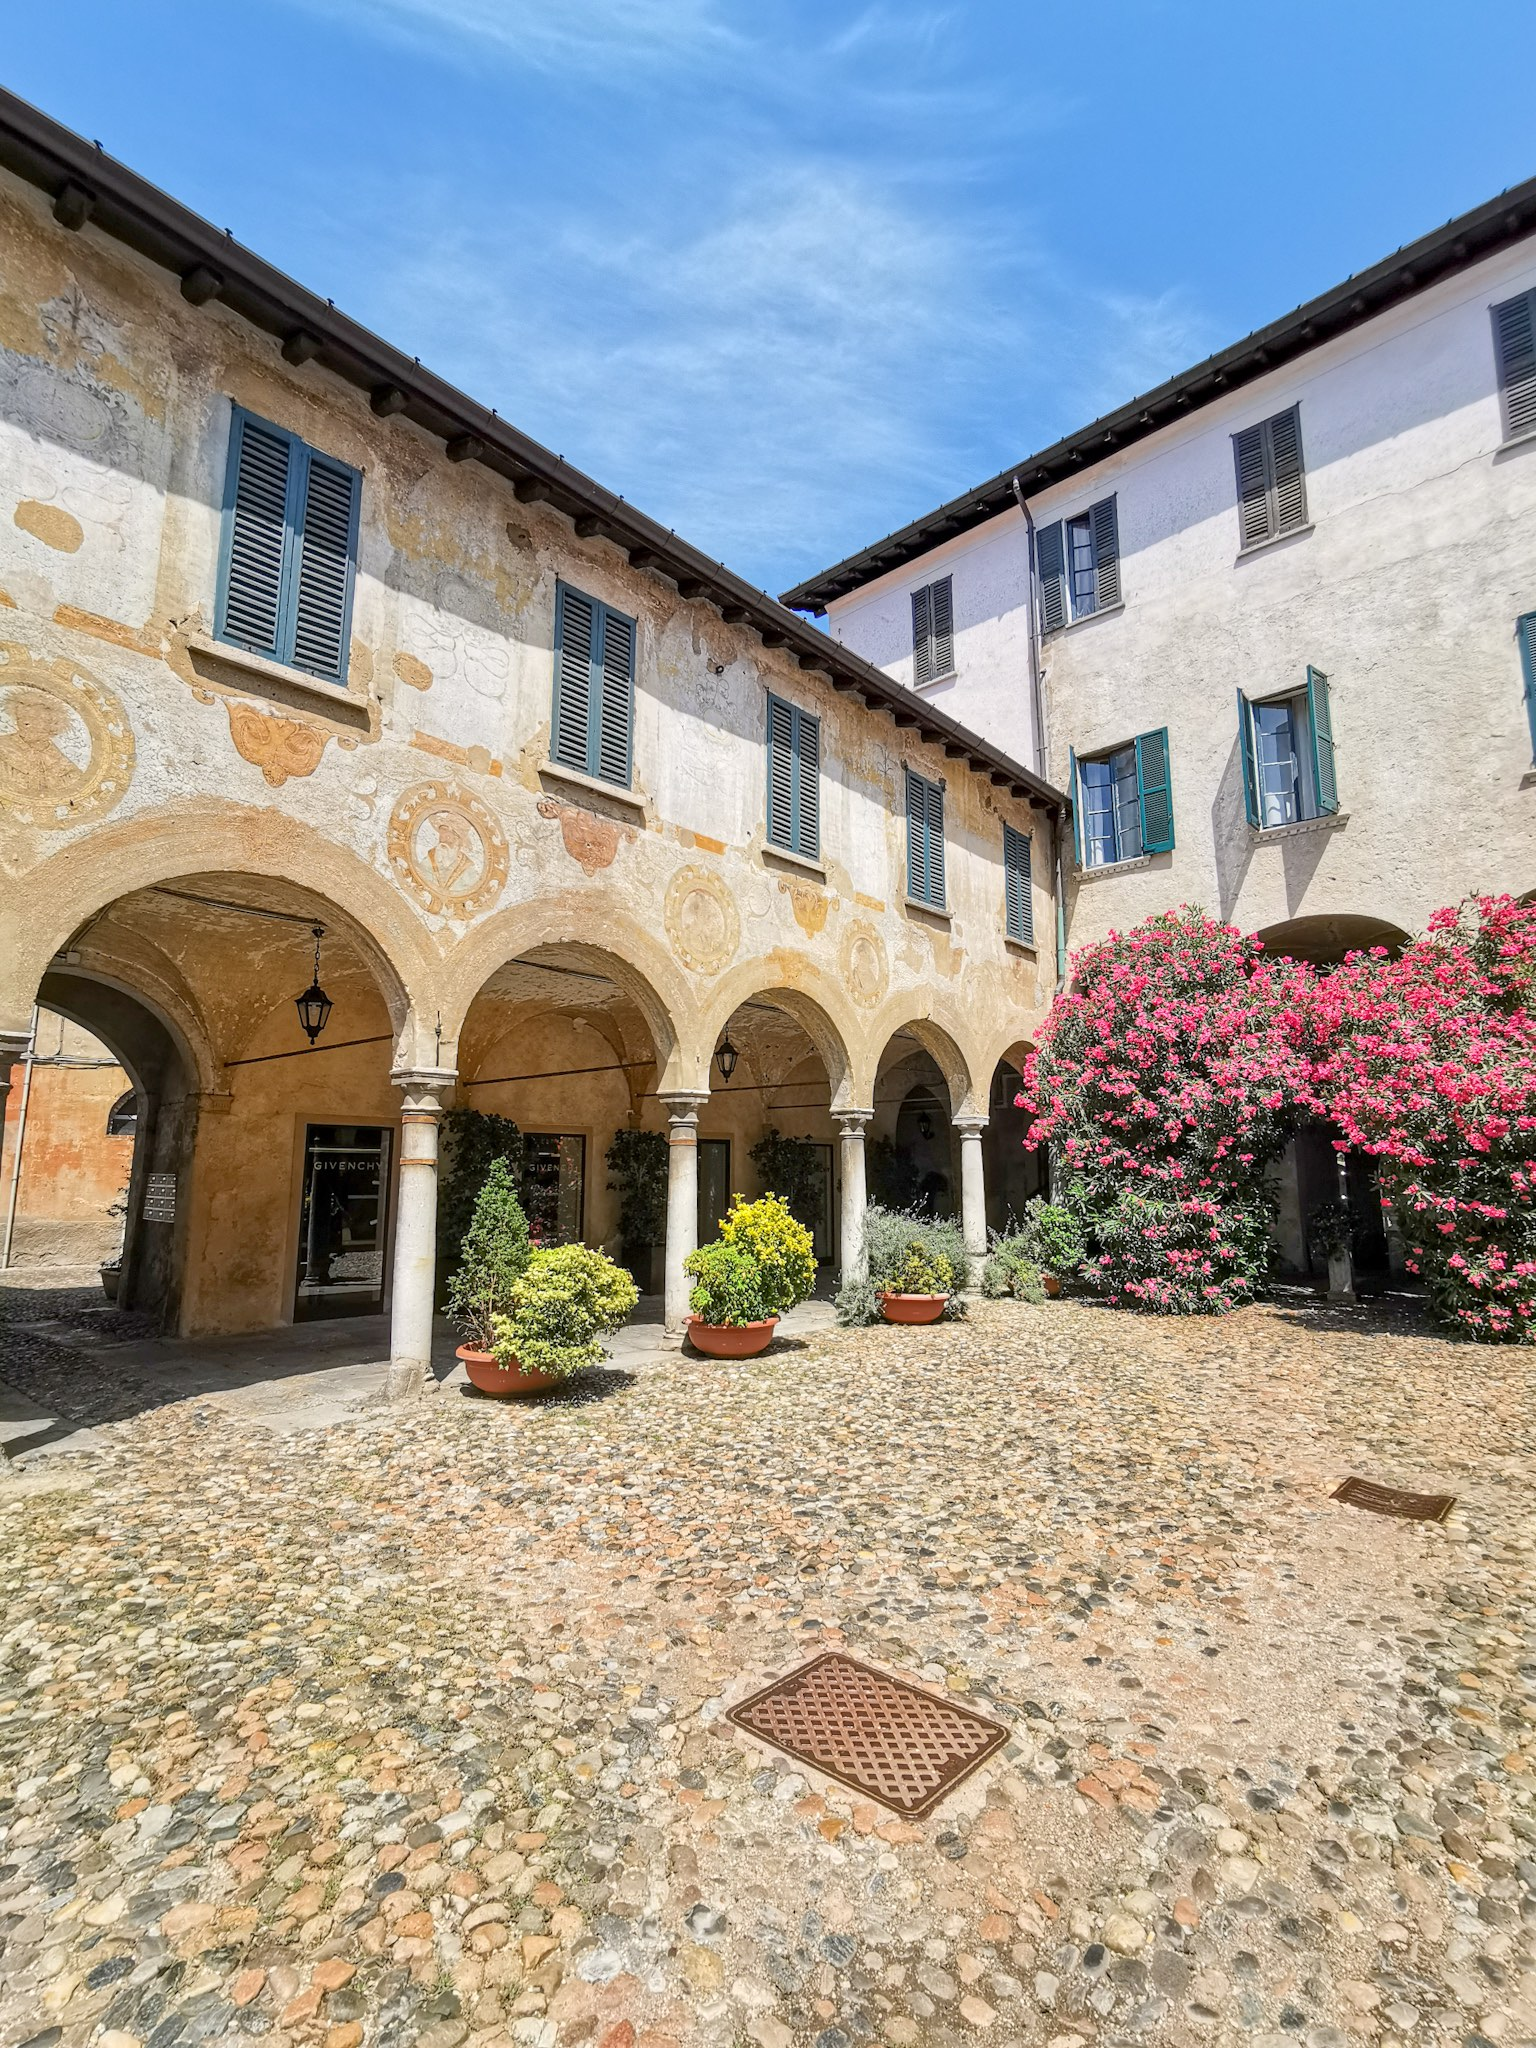 The Broletto courtyard in Varese